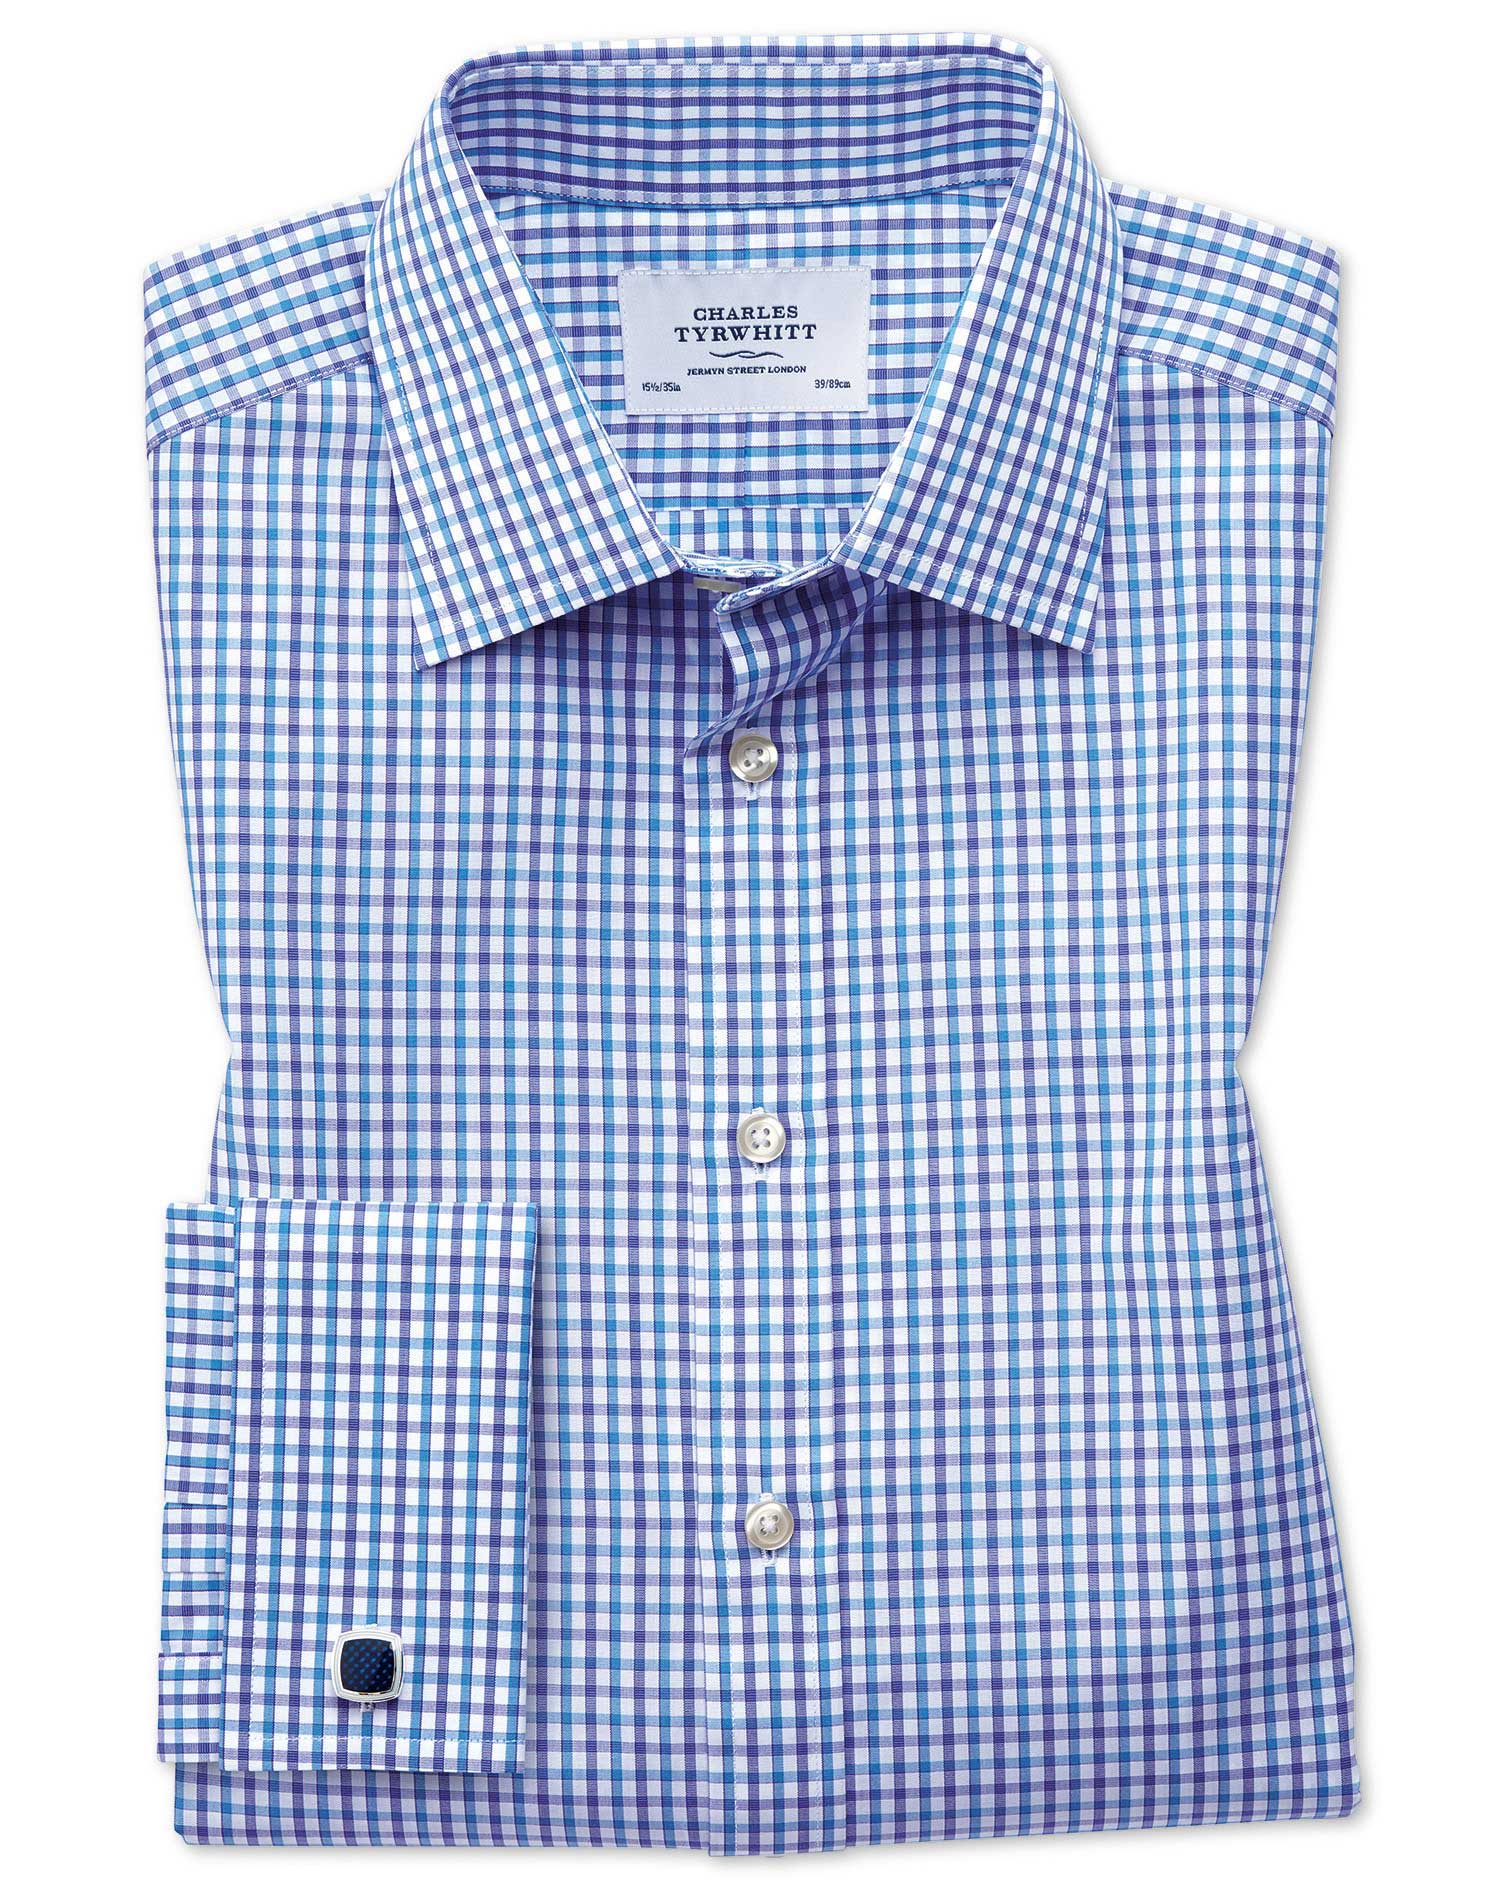 Classic Fit Two Colour Check Blue Cotton Formal Shirt Double Cuff Size 15.5/34 by Charles Tyrwhitt